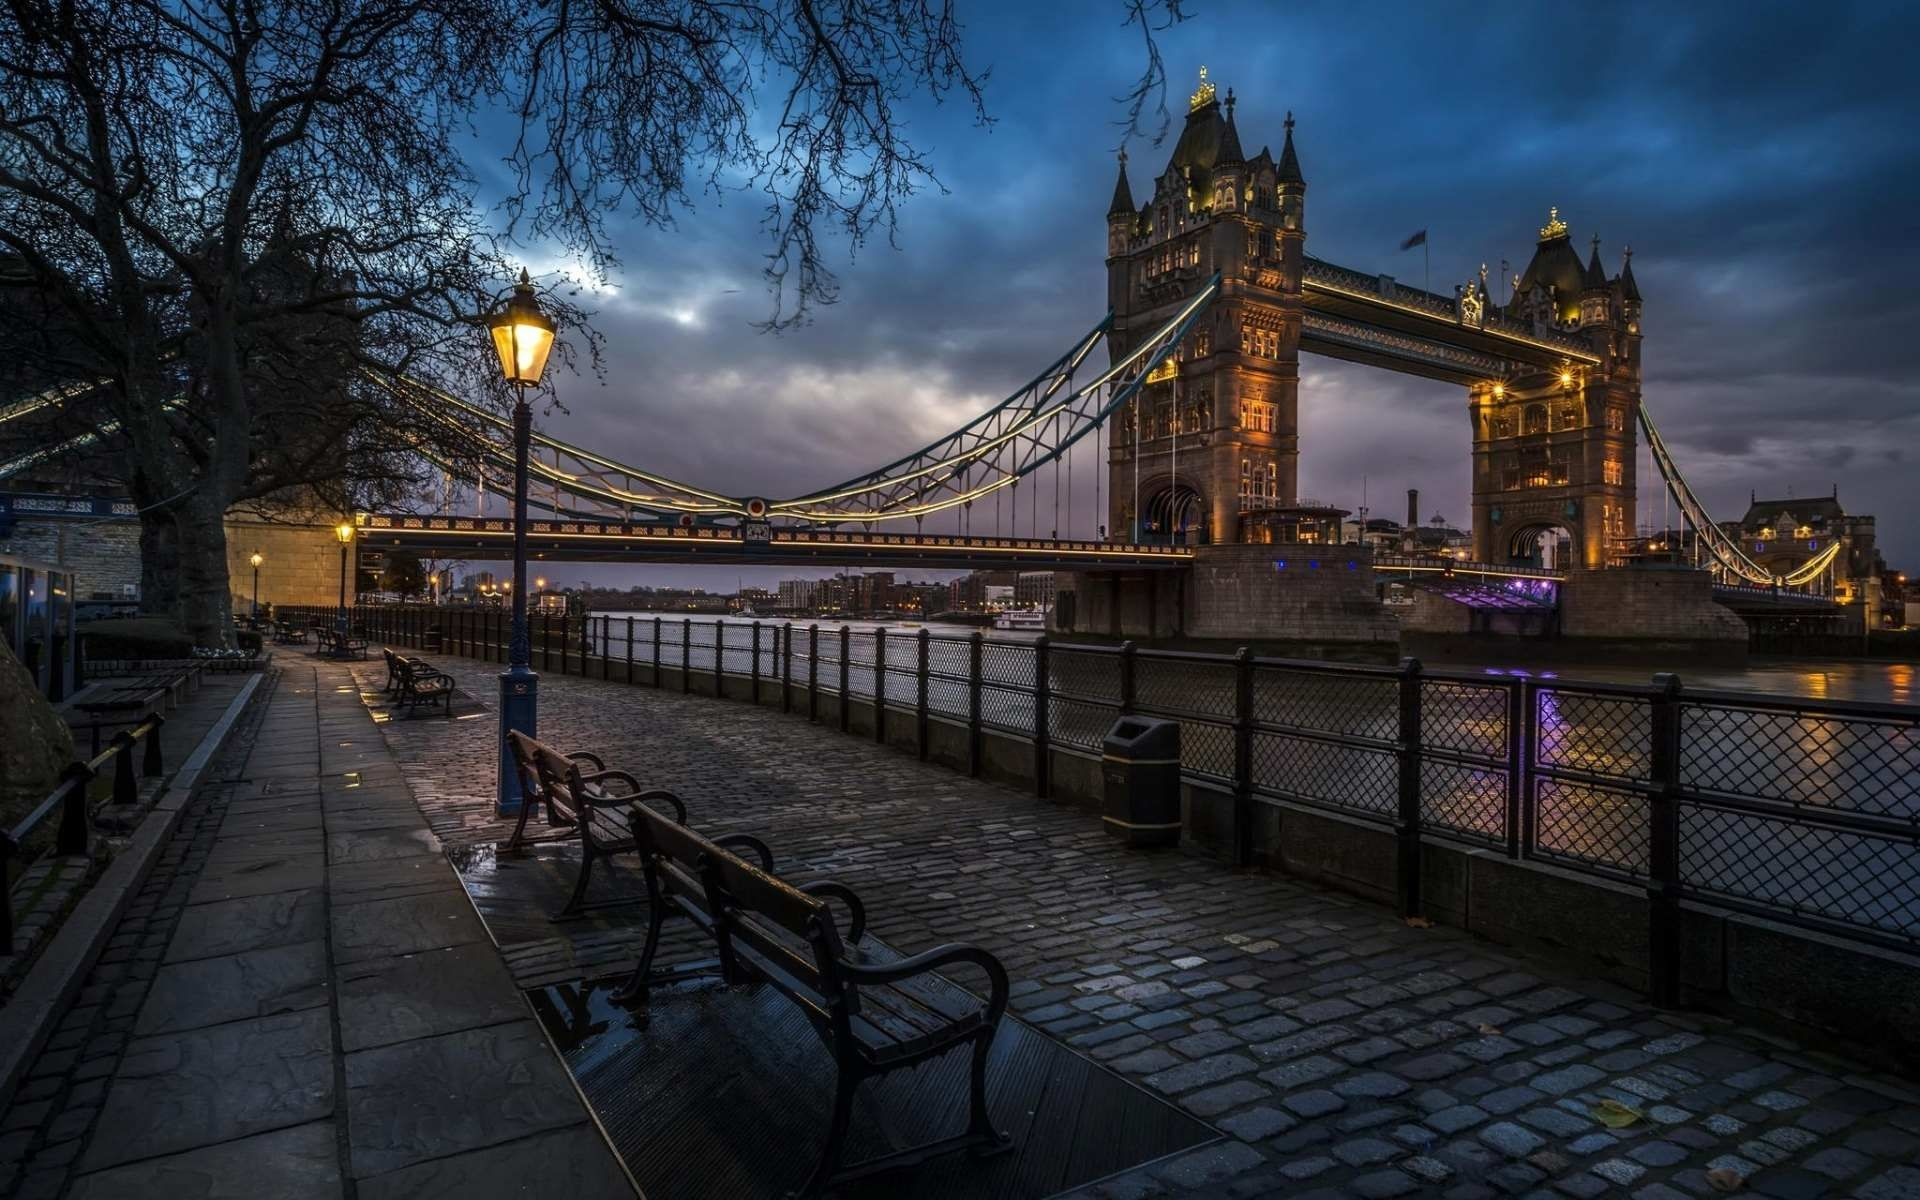 Hd wallpaper london - Undefined London Wallpaper 38 Wallpapers Adorable Wallpapers